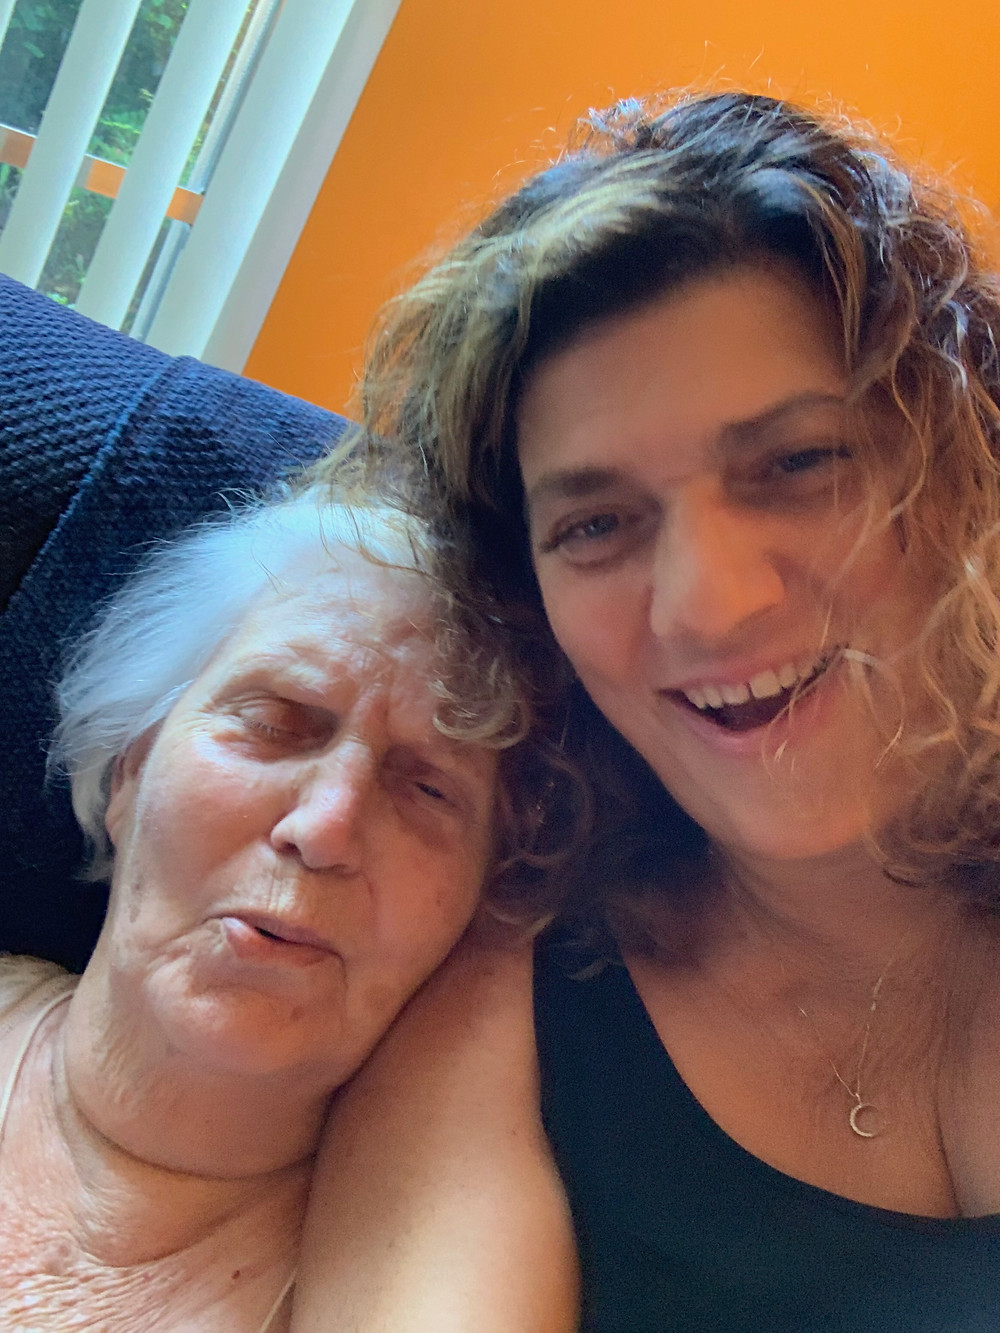 death, laughter, relationships, mother, daughter, anxiety